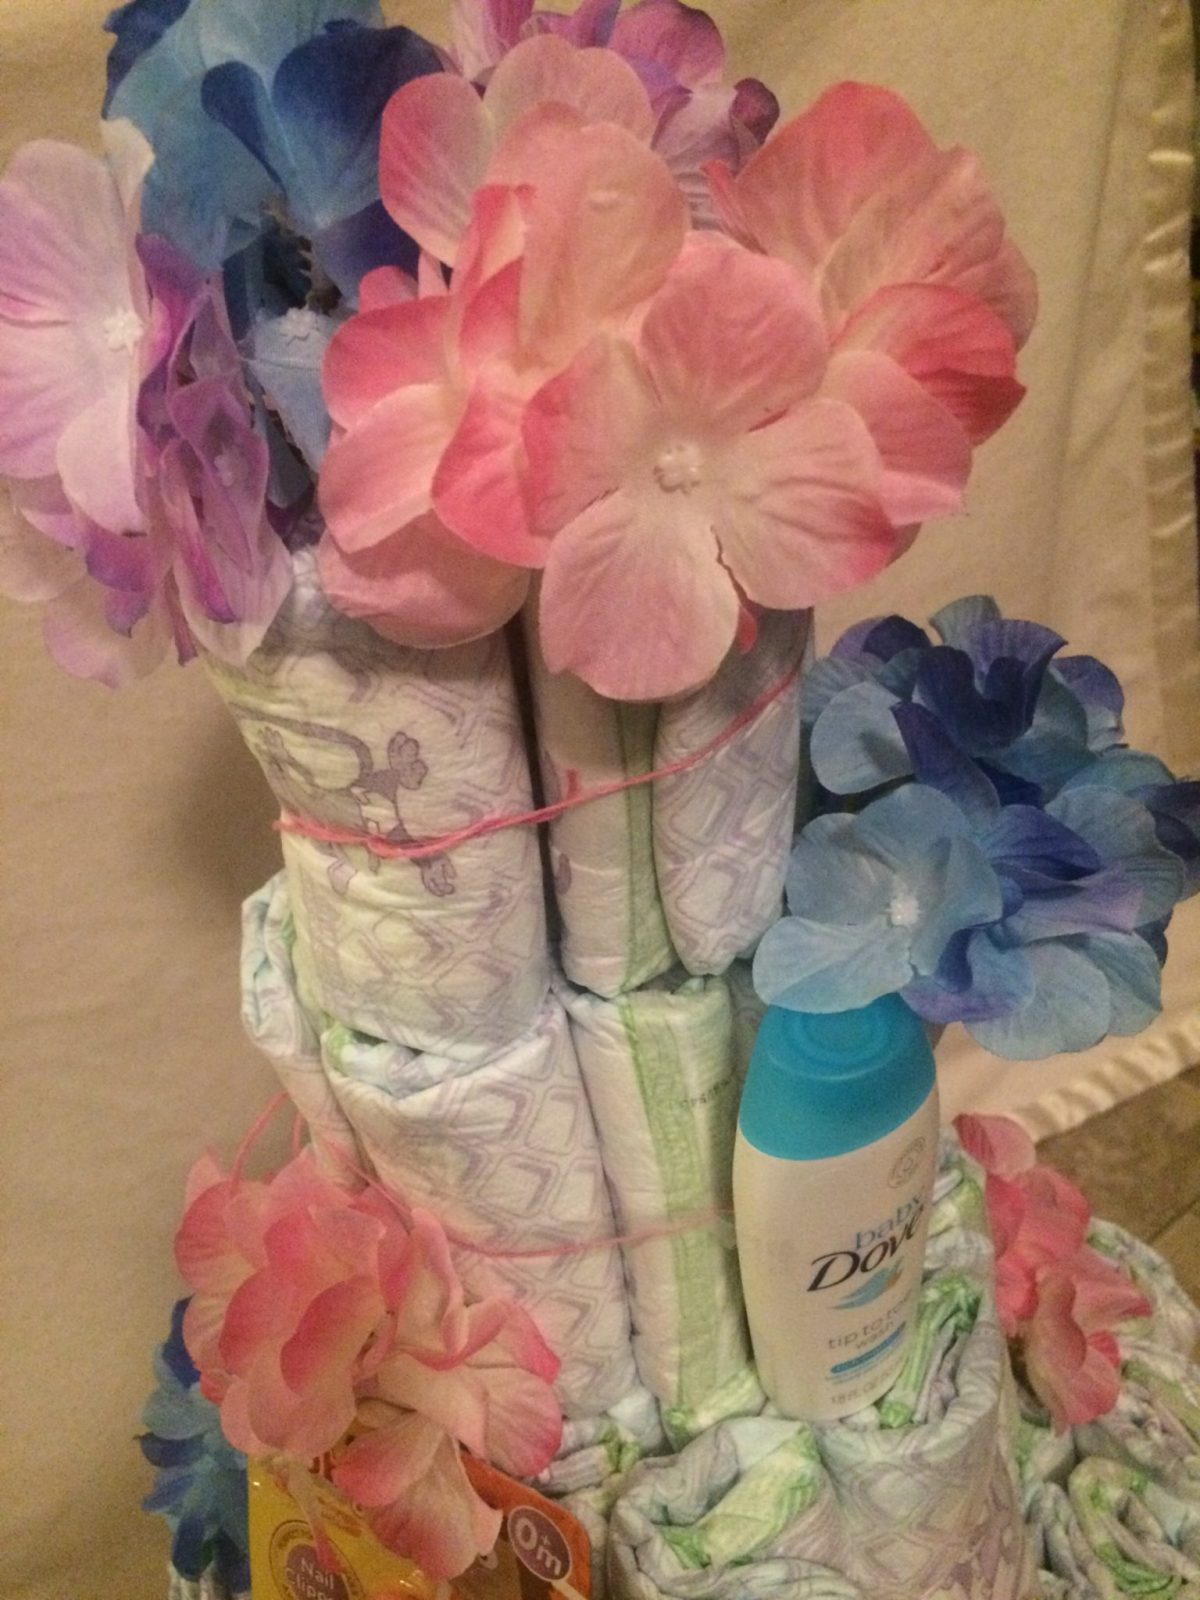 Diaper Cakes Are An Awesome Gift To Bring To Any